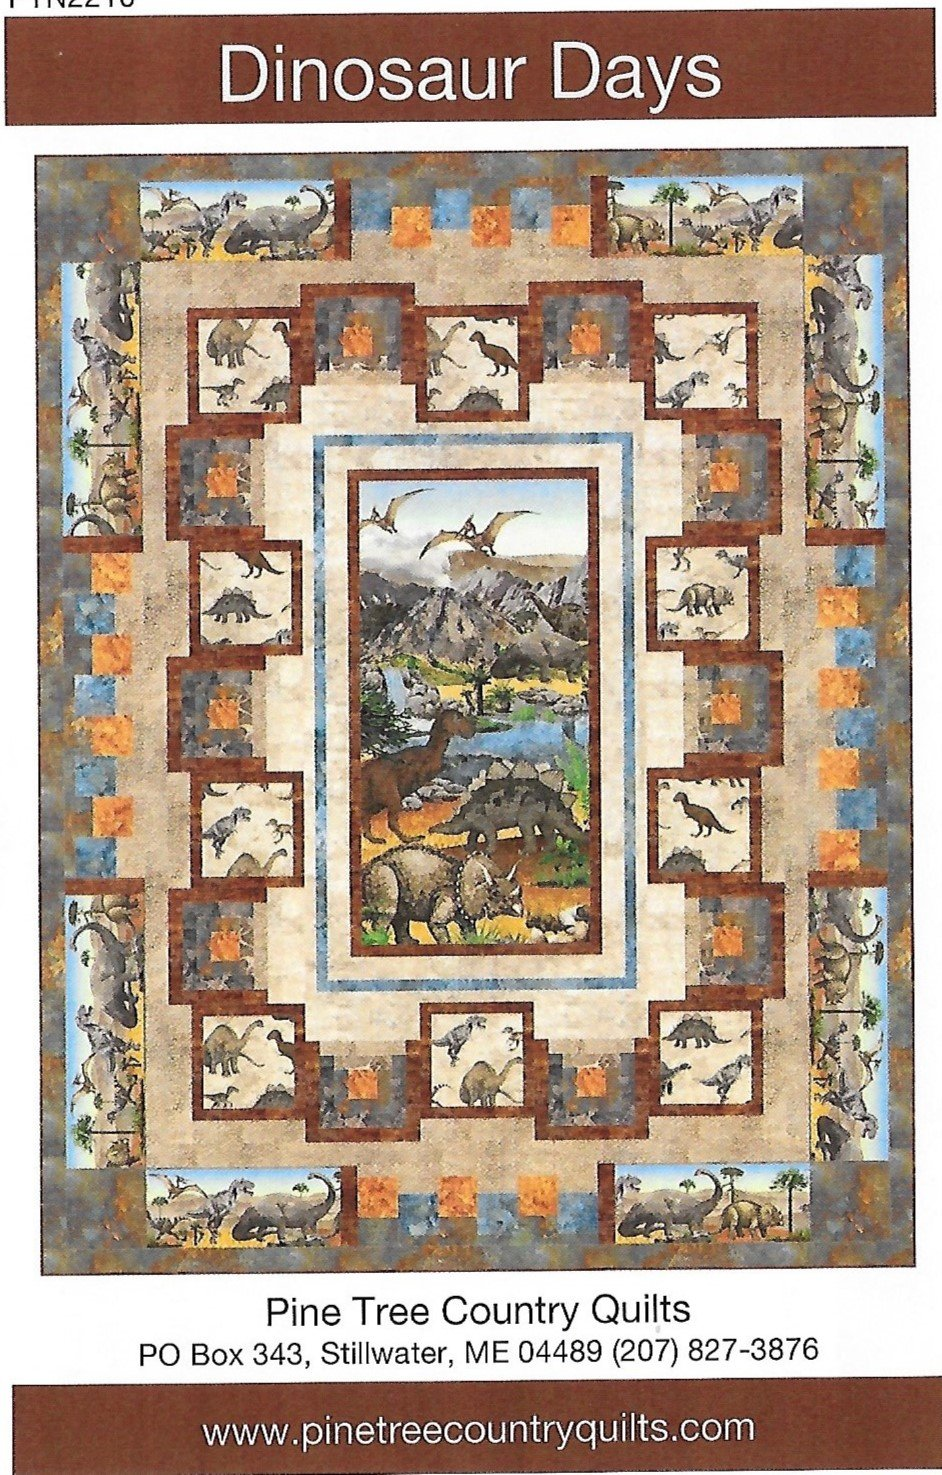 Dinosaur Days twin quilt kit